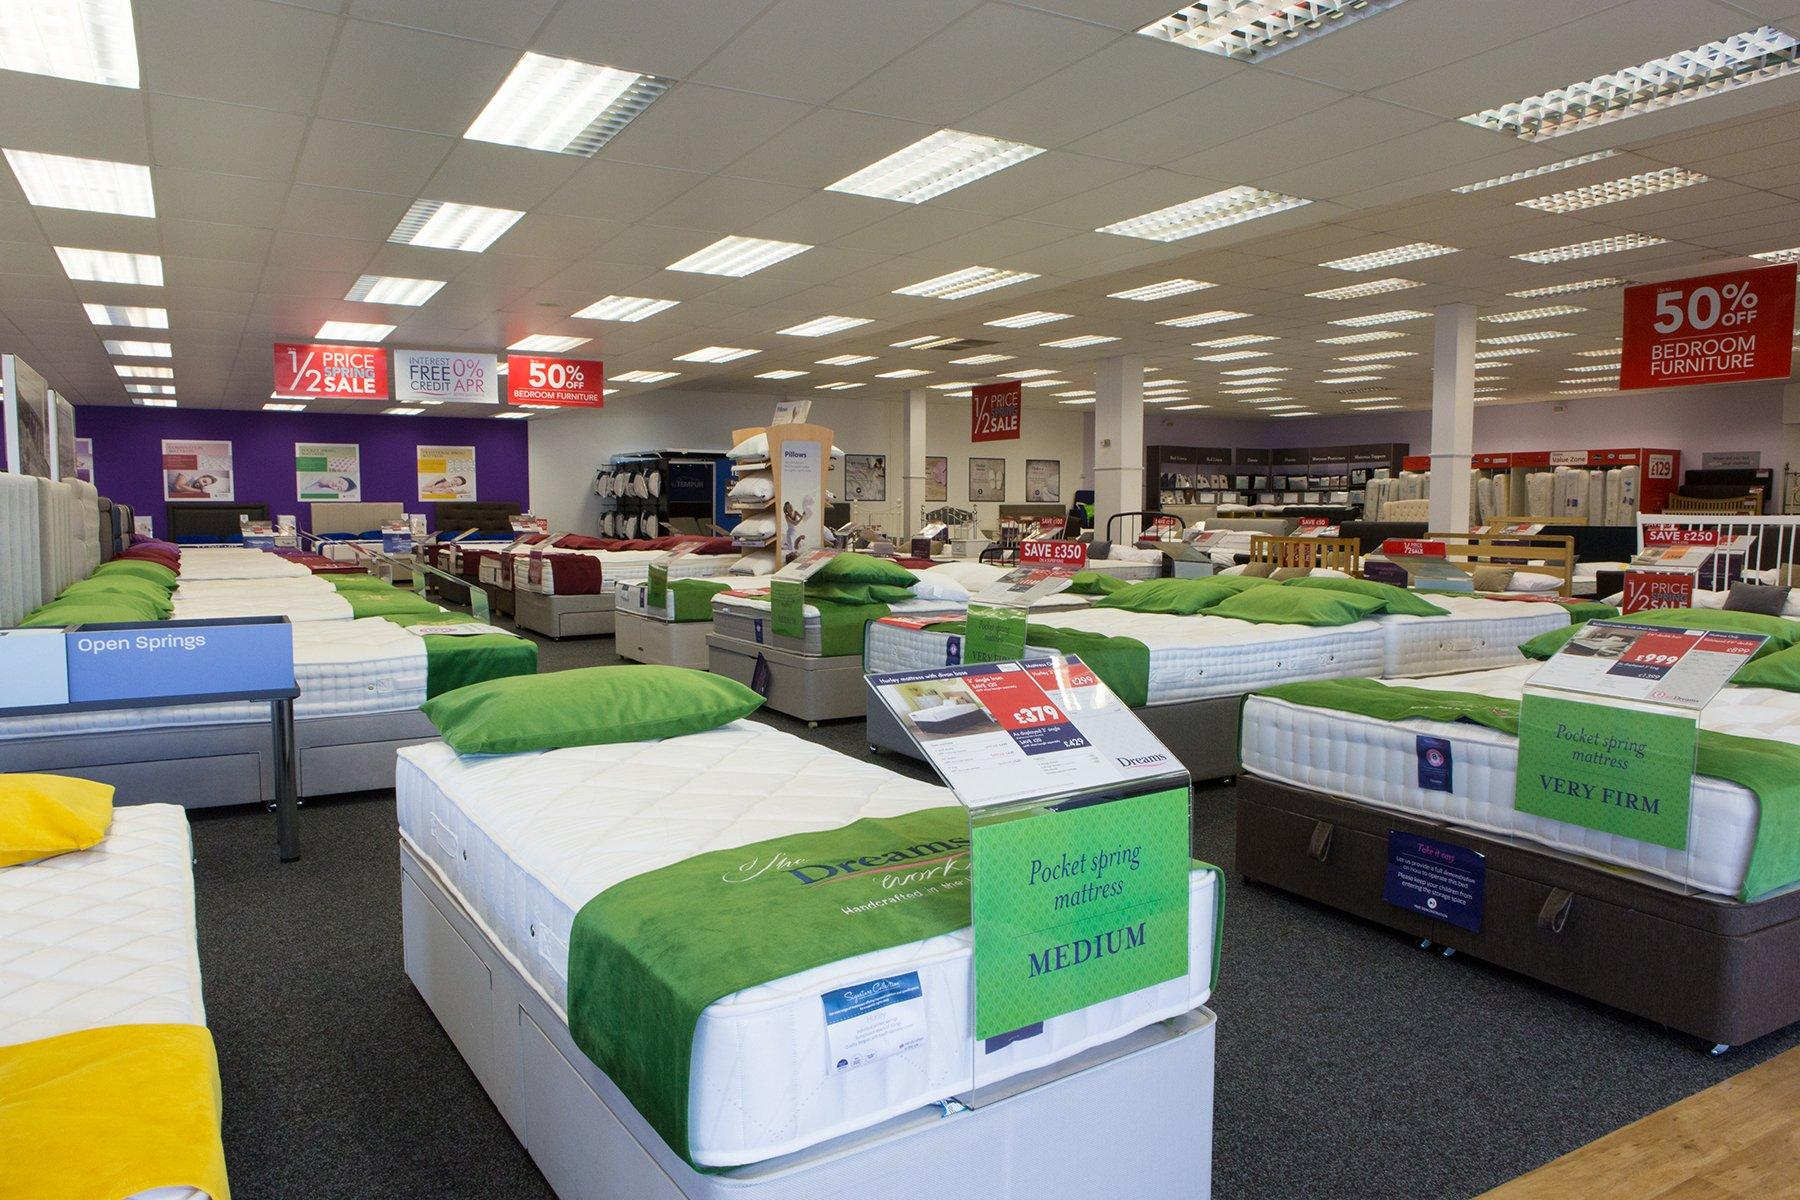 Dreams Store In Stoke On Trent Beds Mattresses Furniture Dreams